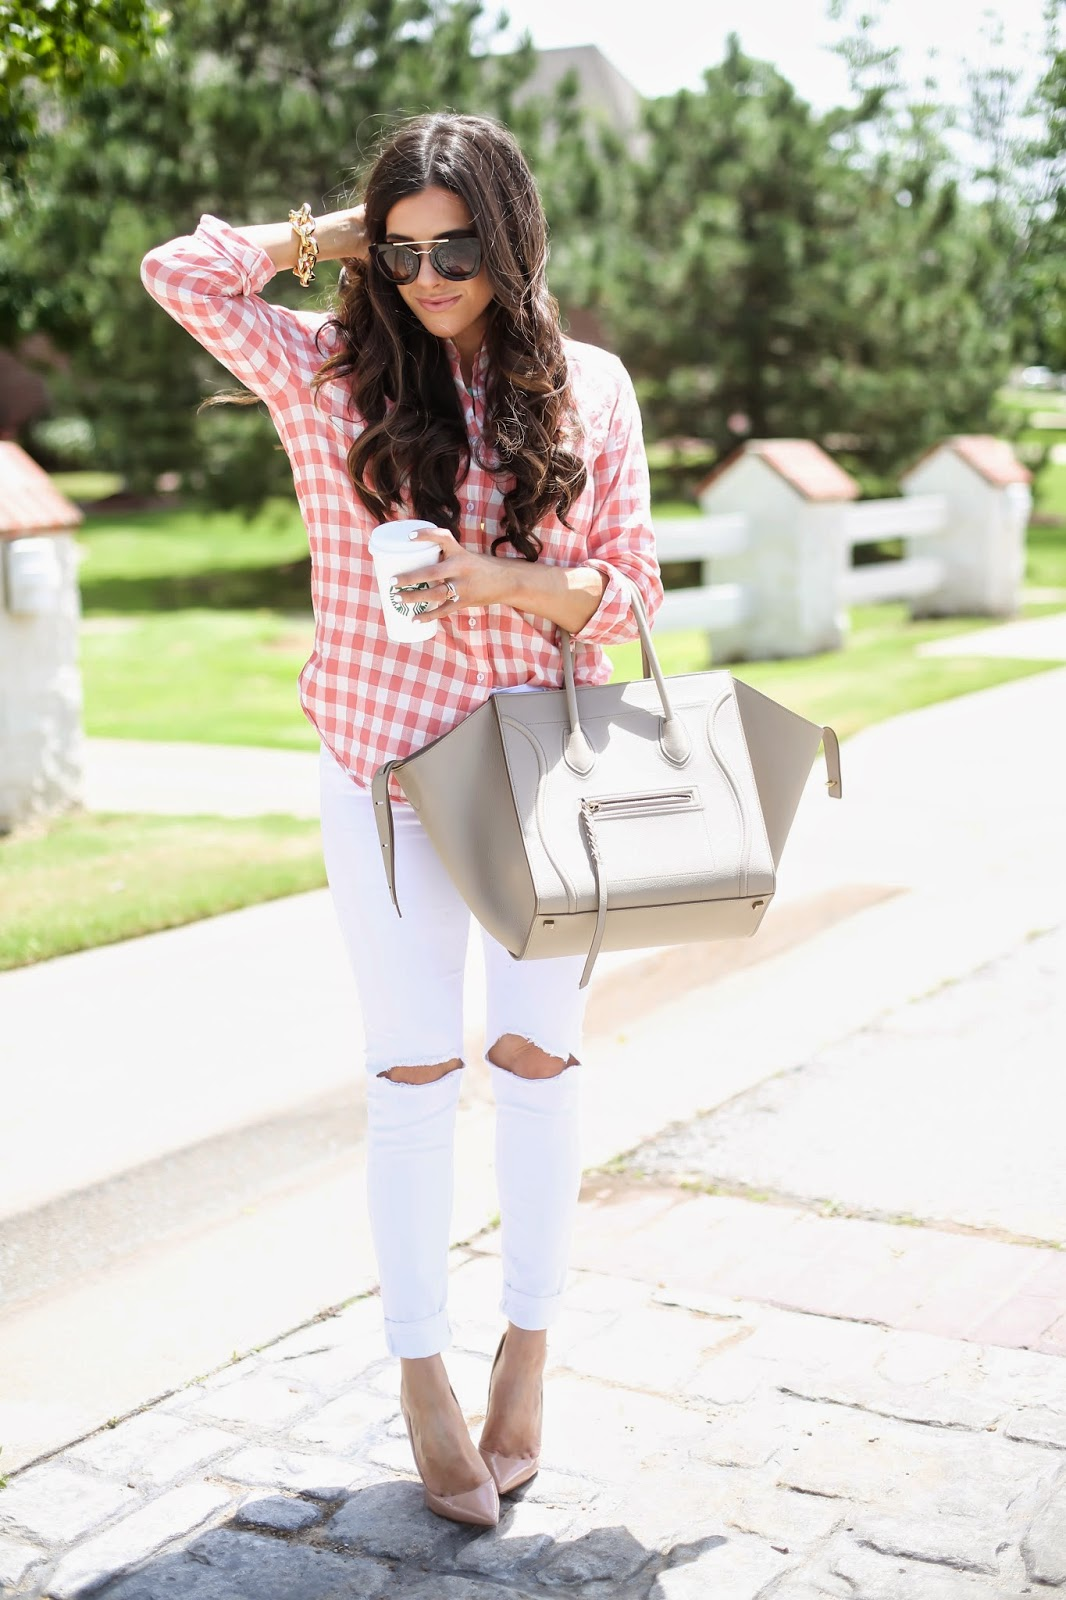 celine purse replica - The Sweetest Thing: Spring Gingham